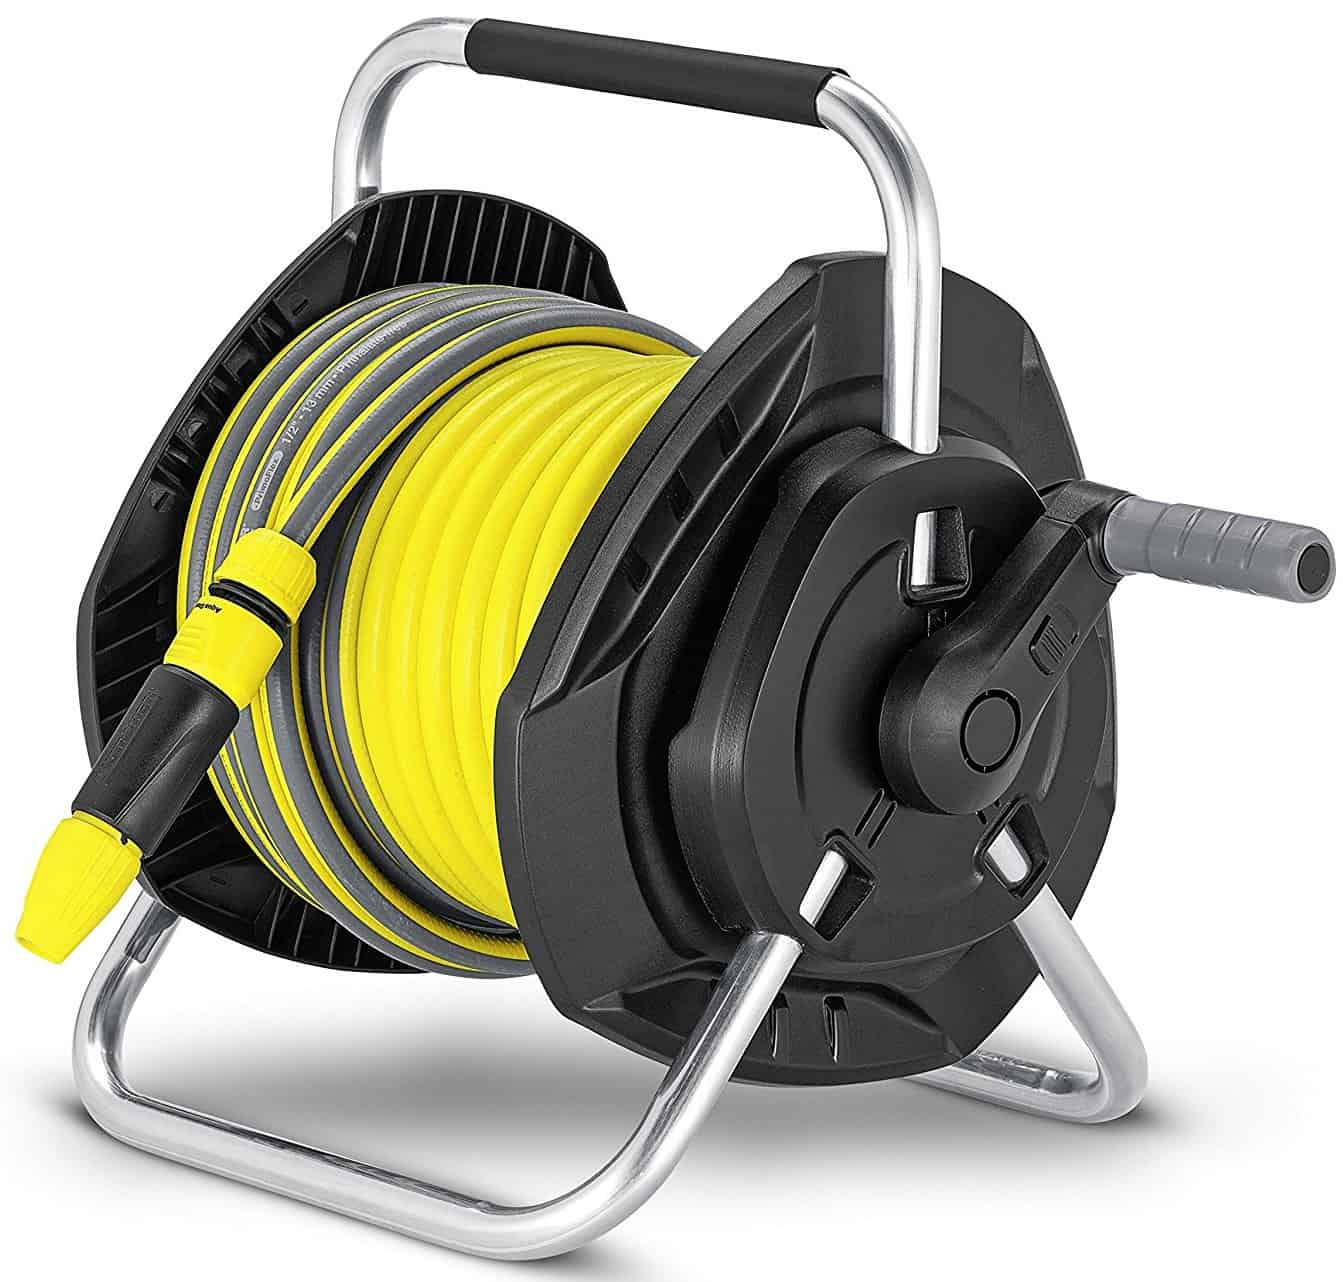 Best Lightweight Garden Hose – Karcher